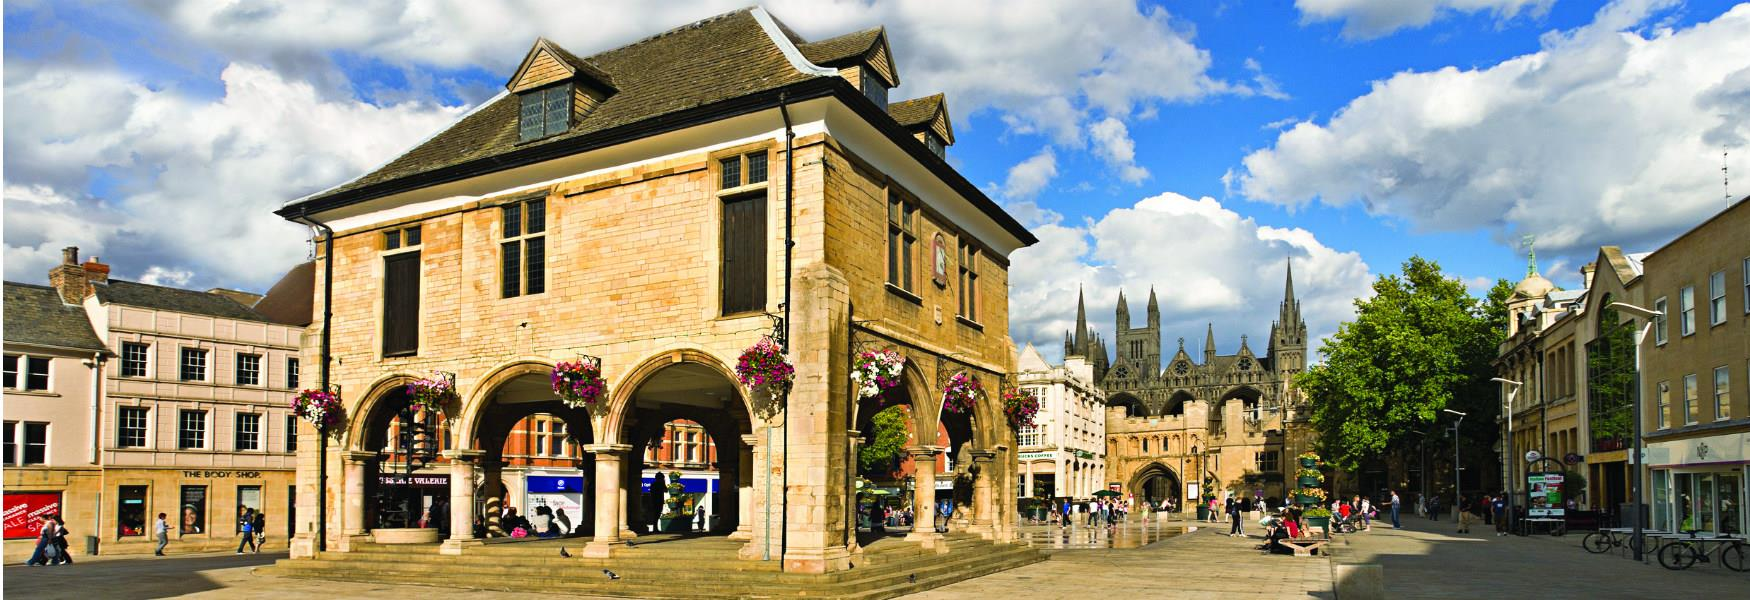 Image of the Peterborough Guild Hall in Cathedral Square